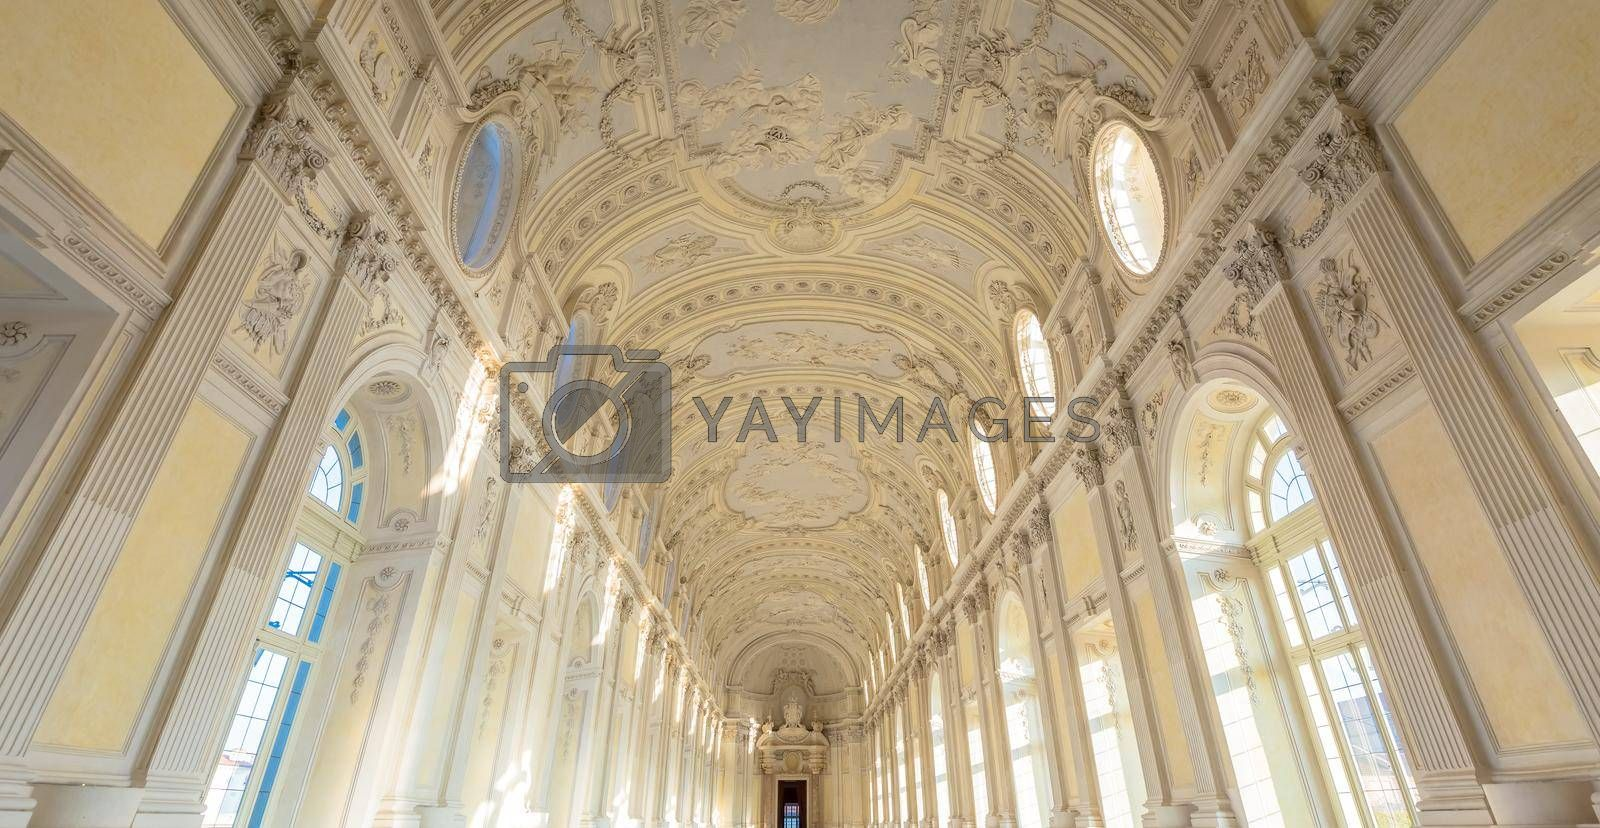 VENARIA REALE, ITALY - CIRCA SEPTEMBER 2020: luxury marble for this gallery interior. The Great Gallery is located in Reggia di Venaria Reale (Venaria Royal Palace)